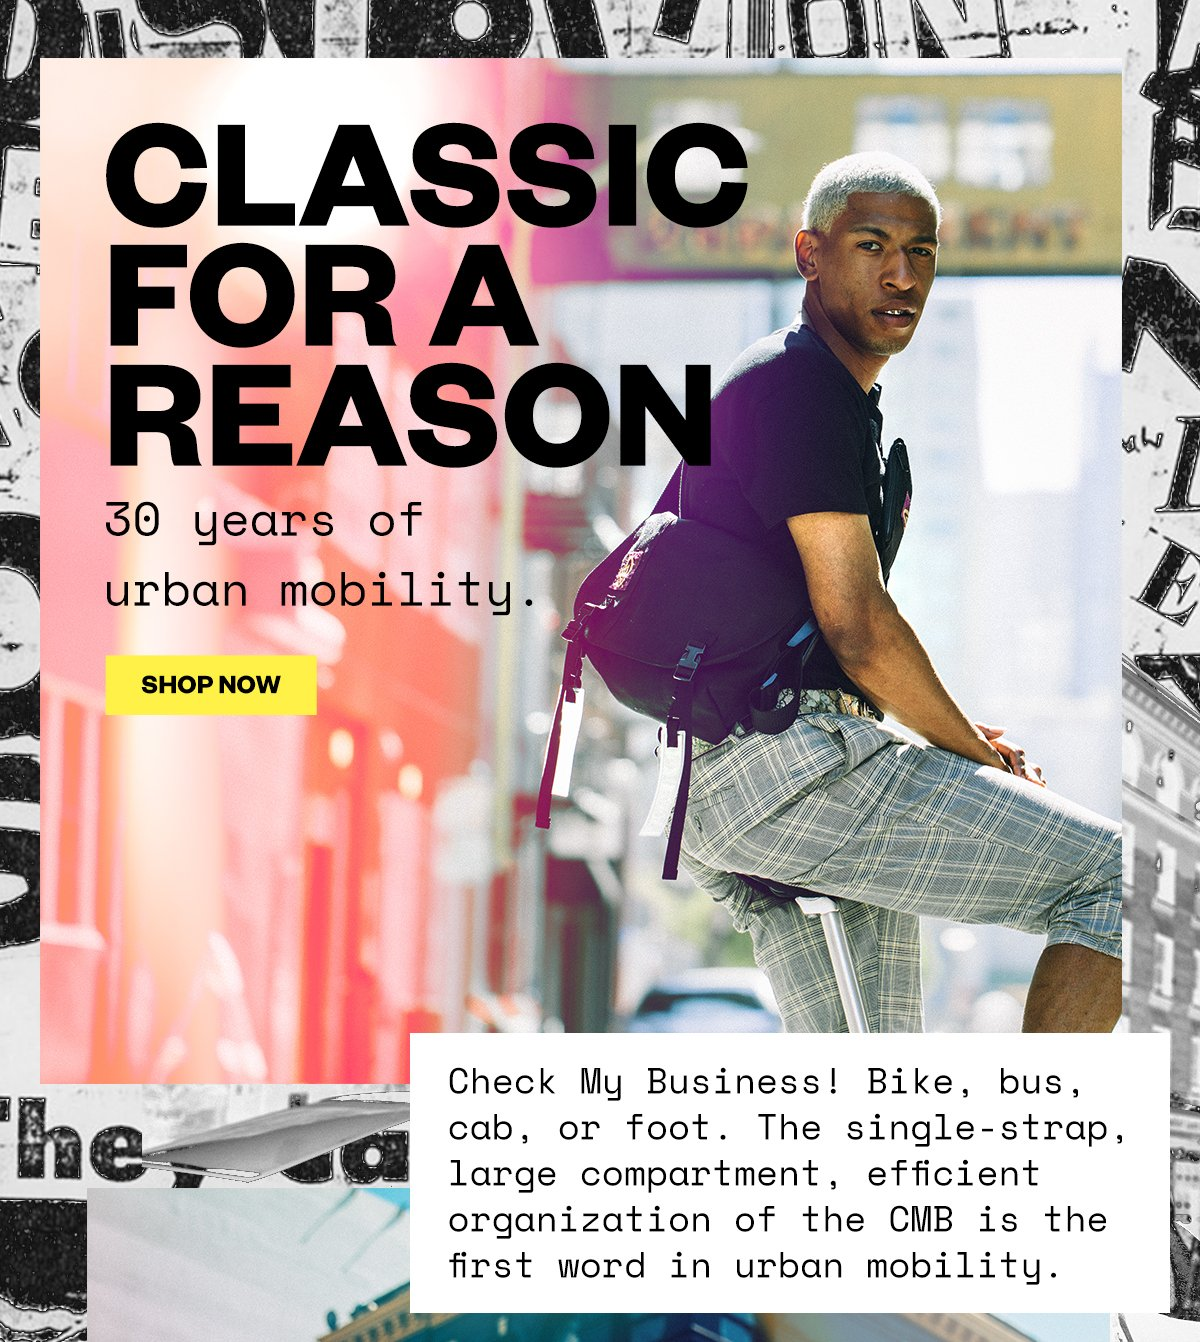 CLASSIC FOR A REASON. 30 years of urban mobility. SHOP NOW. Check My Business! Bike, bus, cab, or foot. The single-strap, large compartment, efficient organization of the CMB is the first word in urban mobility.